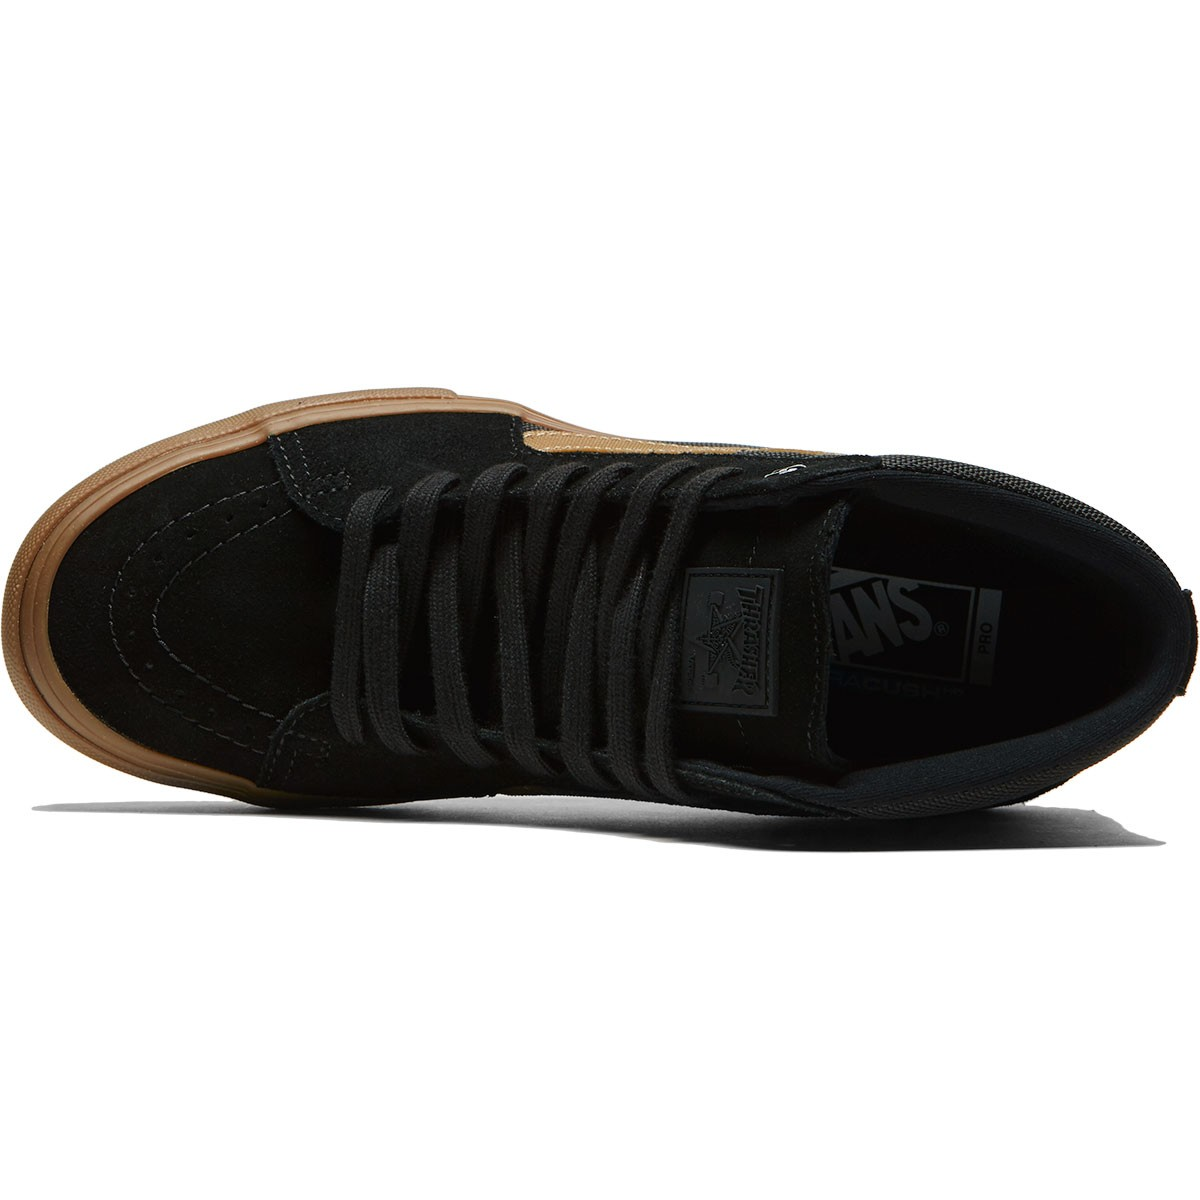 f52fc977e6 Vans X Thrasher Sk8 Hi Pro Shoes - Thrasher Black Gum - 6.5